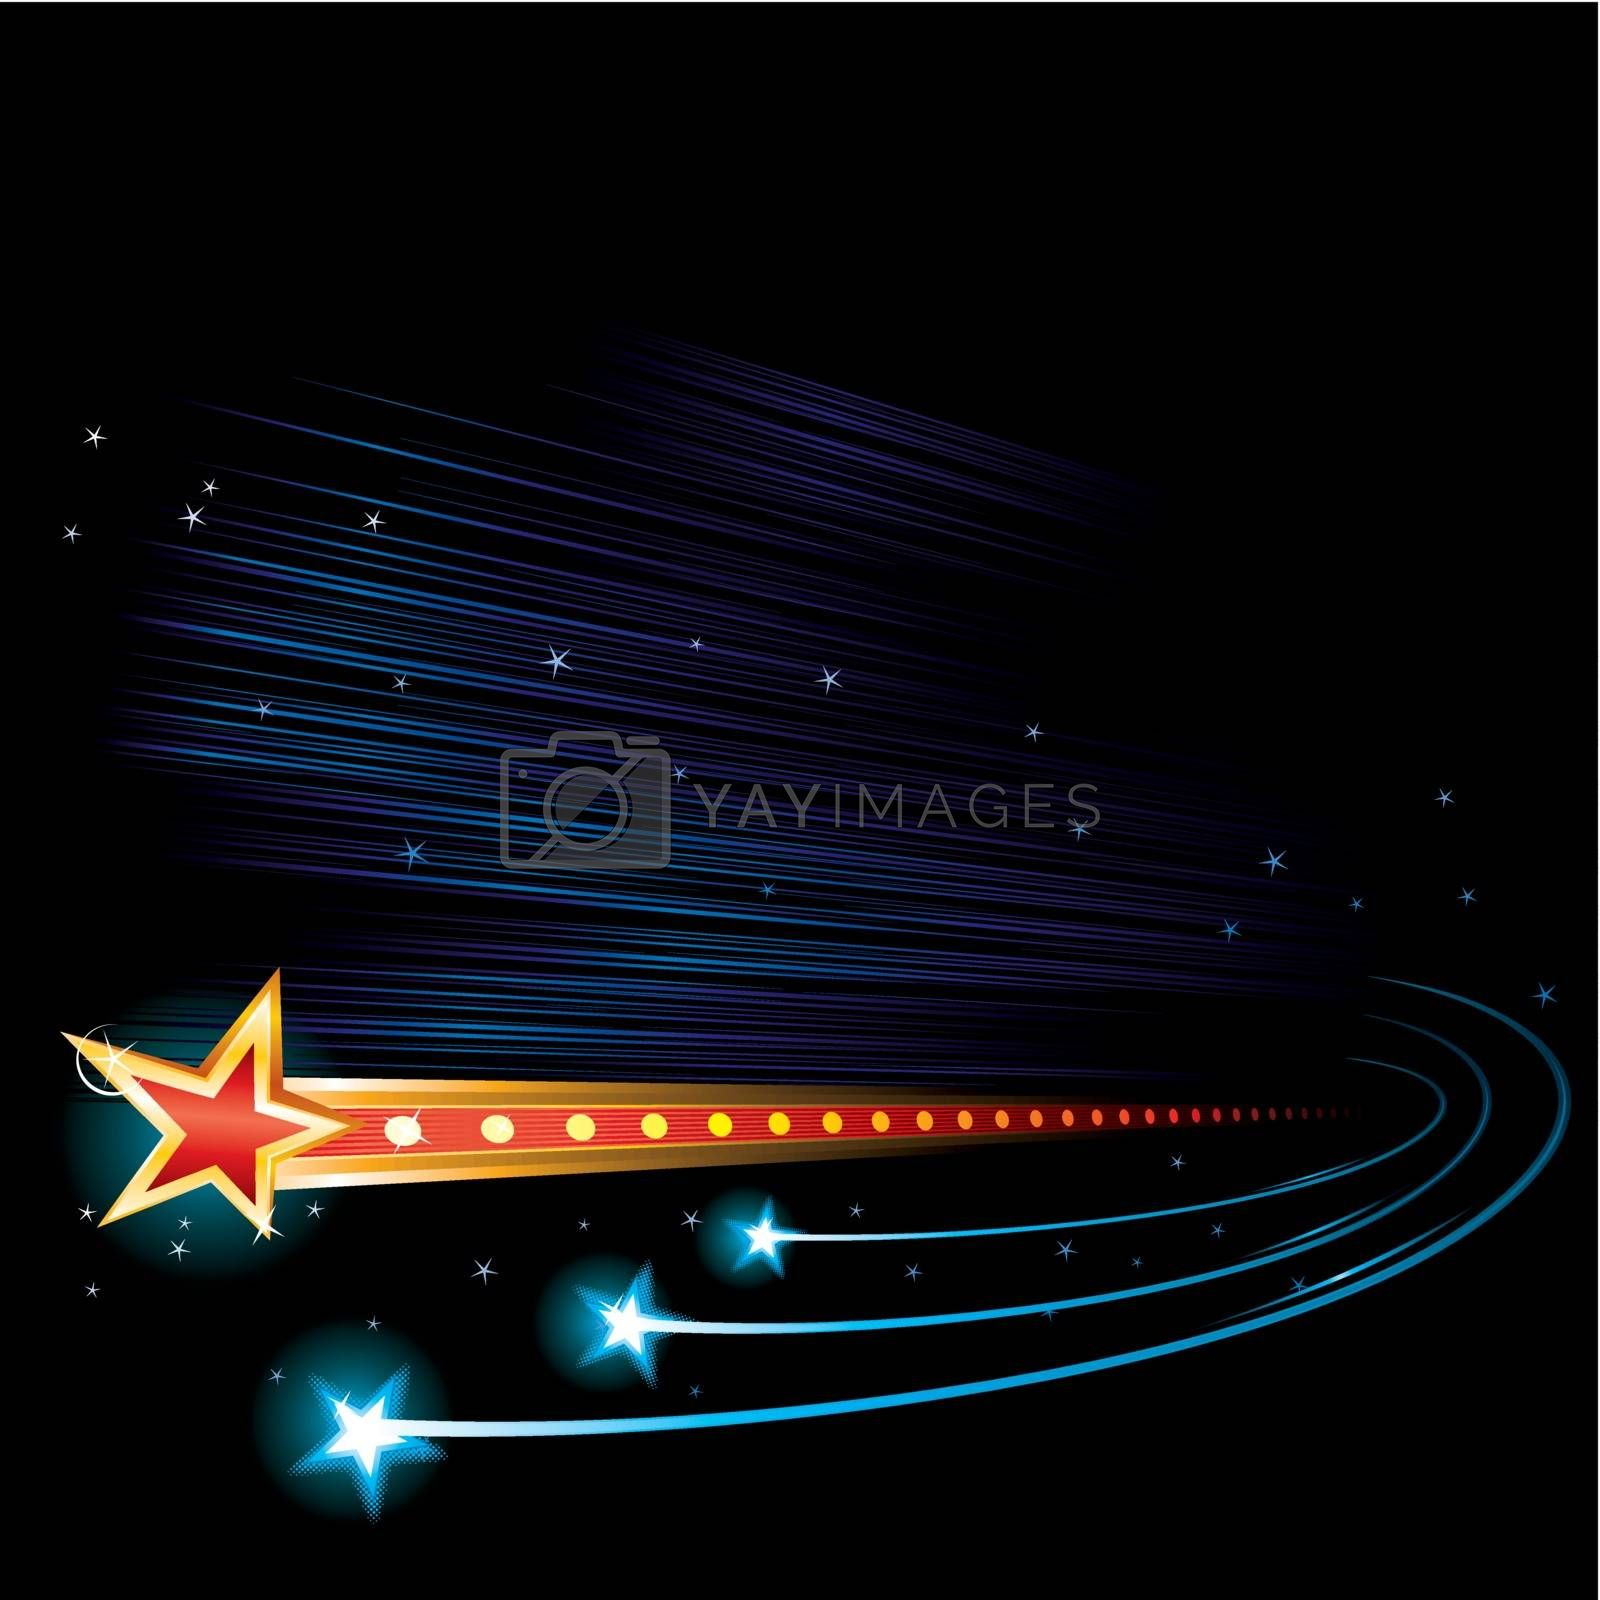 Dark sky background with coming stars